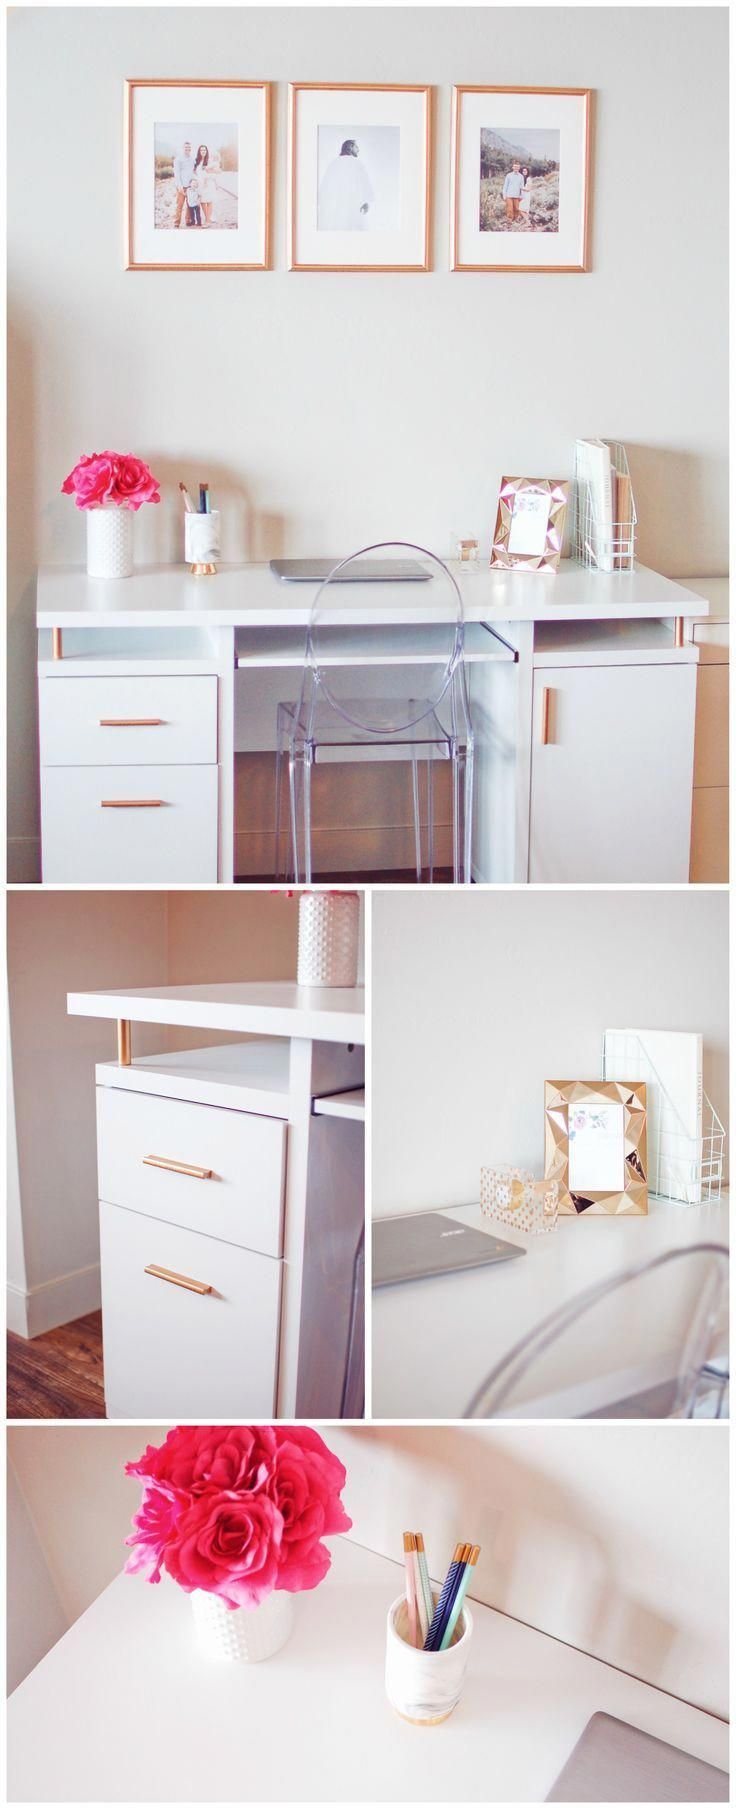 From Drab To Fab! My Desk Decor Makeover on a Budget